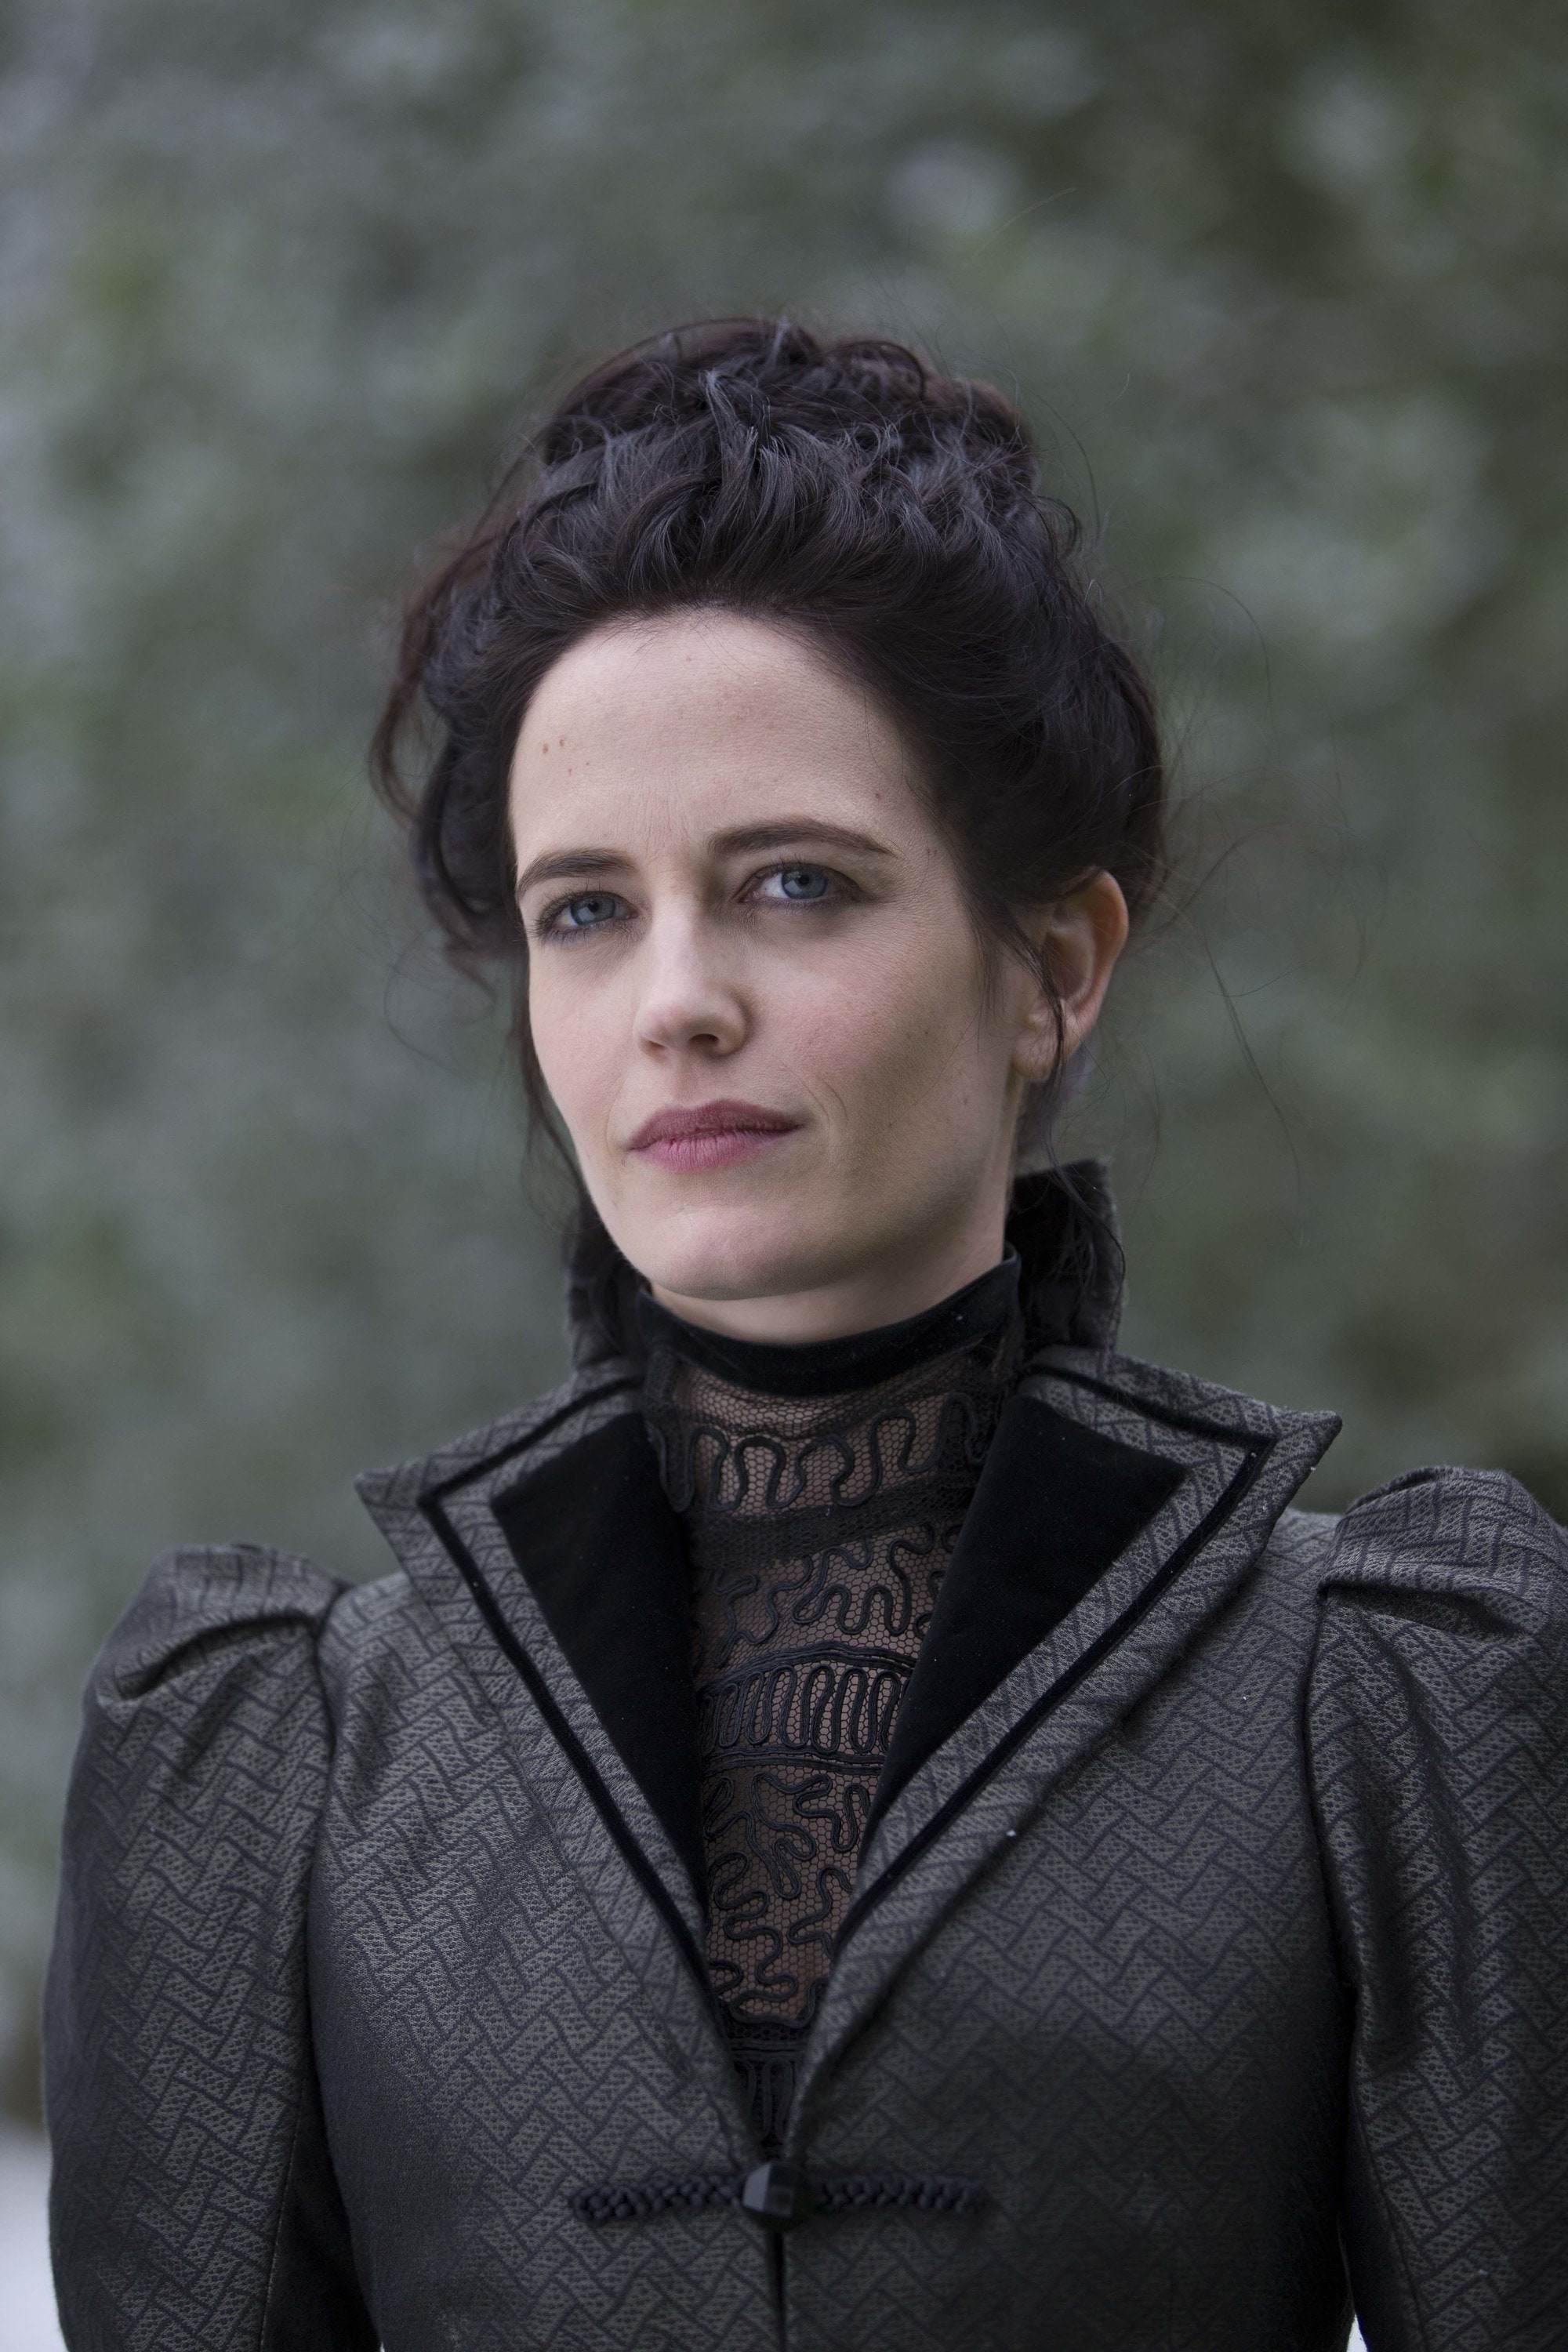 Victorian hairstyles: Close-up from the tv show Penny Dreadful of a brunette wearing